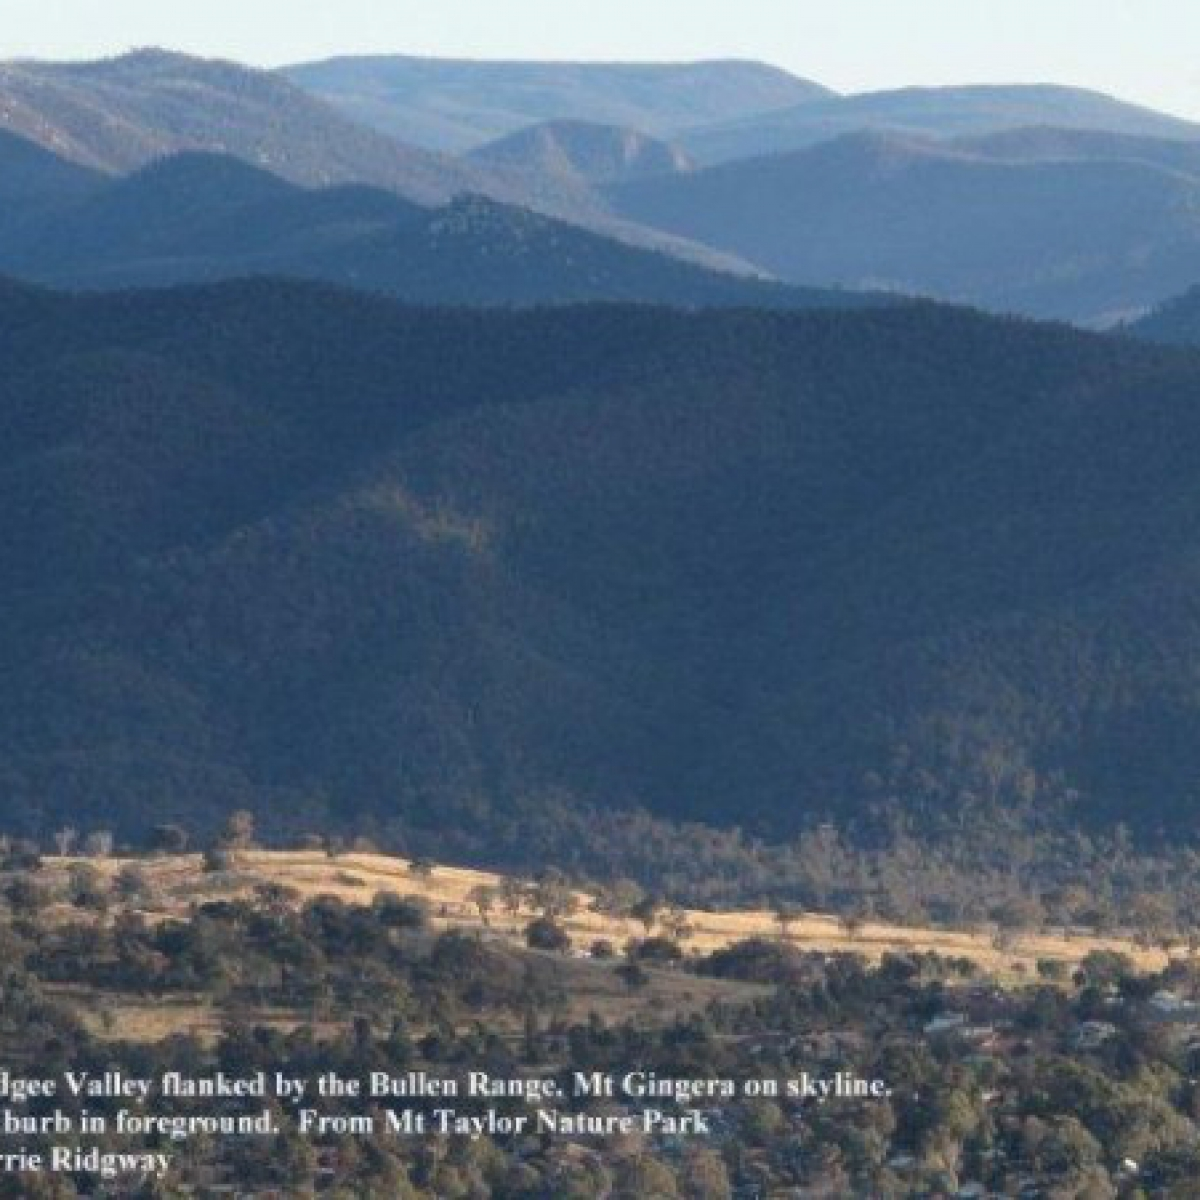 Murrumbidgee flanked by Bullen Range with Mt Gingera on skyline